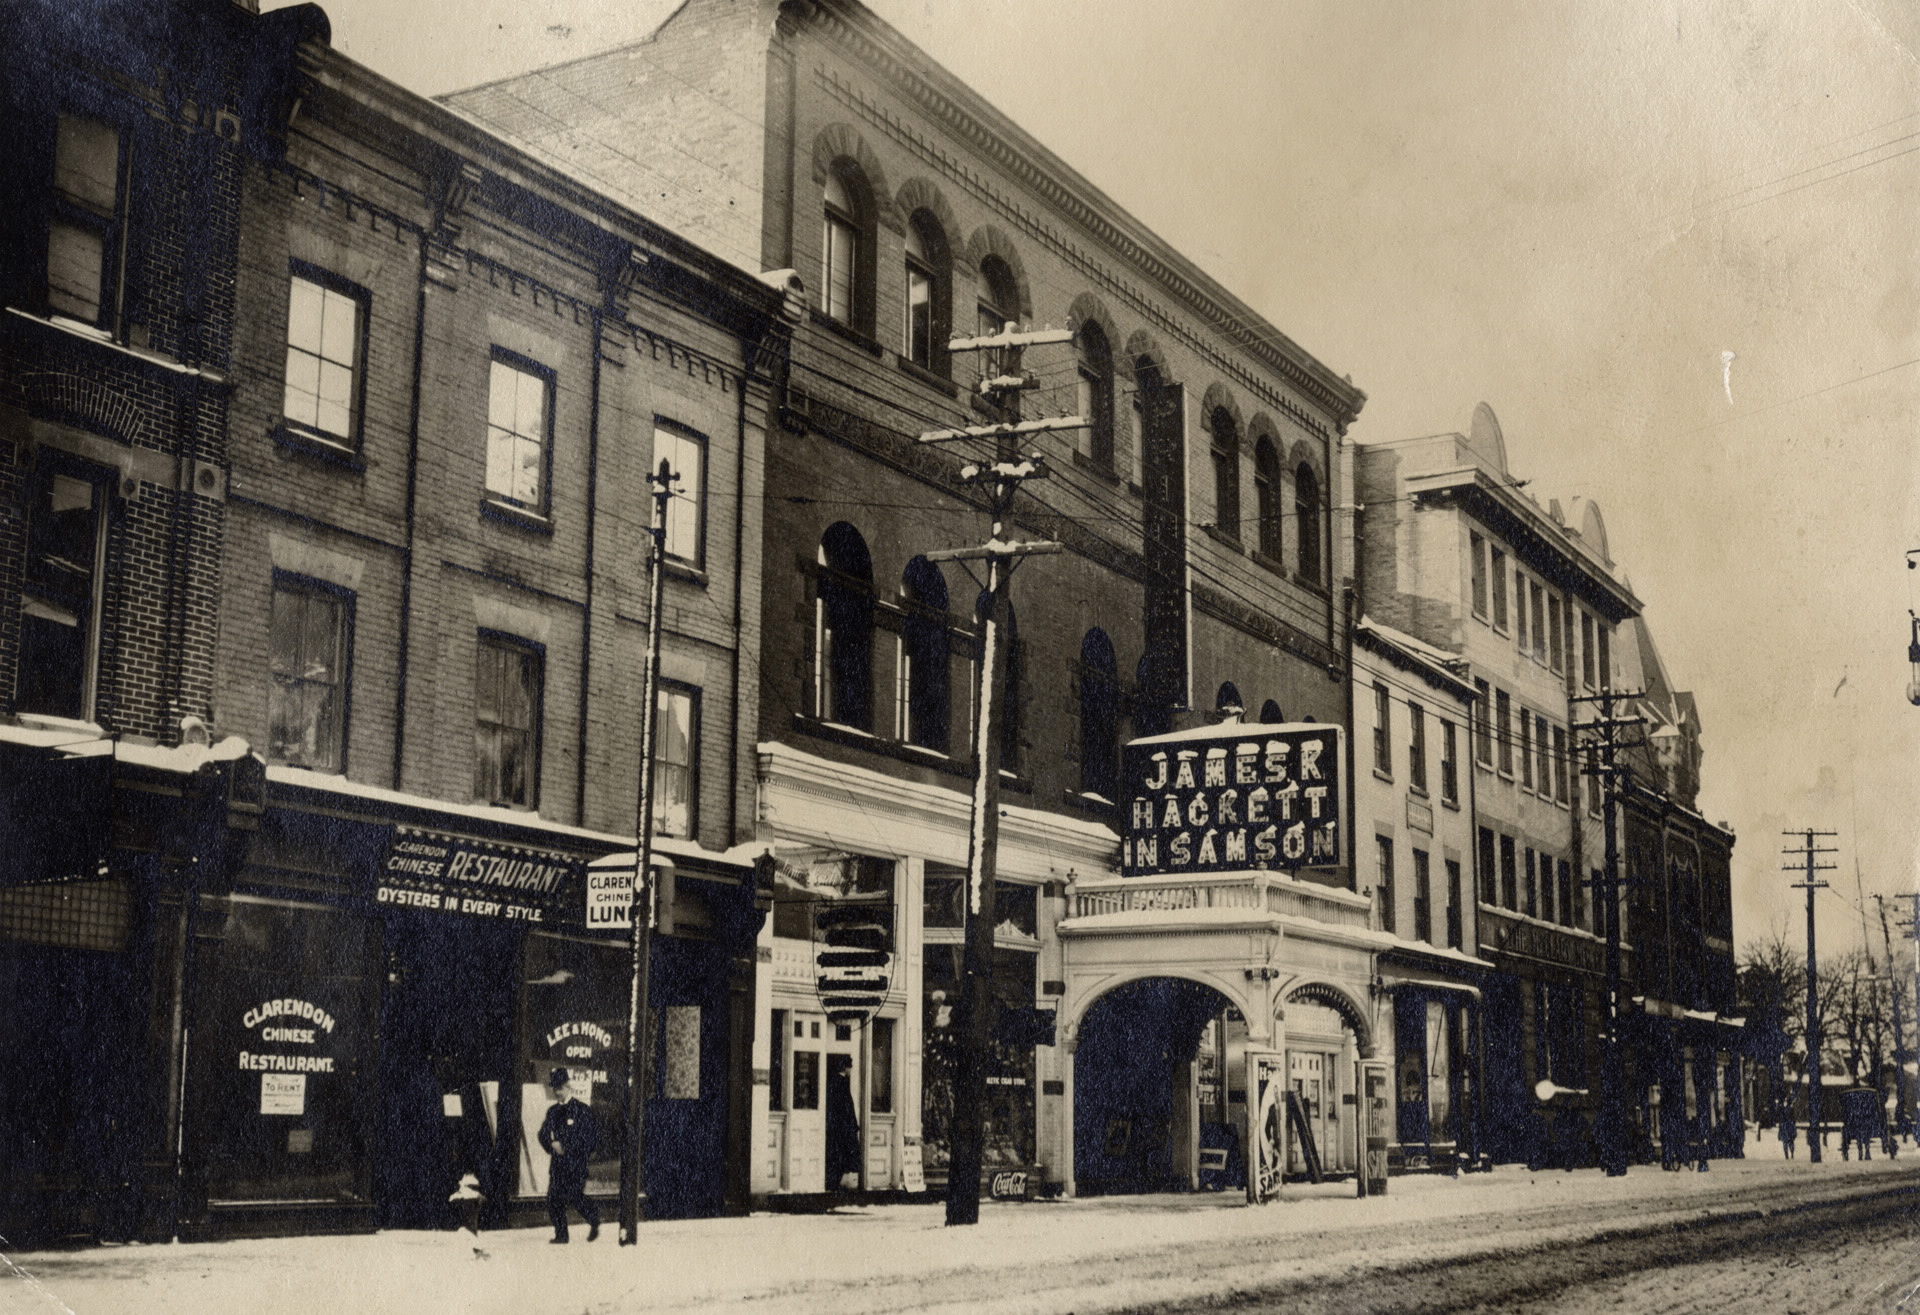 "Princess Theatre - seen from King Street, 1910.  ""King St. W., south side, between York & Simcoe Sts., showing Princess Theatre. Toronto, Ont."" Toronto Public Library. Toronto Reference Library, Baldwin Collection, B 5-30b.  www.torontopubliclibrary.ca/detail.jsp?Entt=RDMDC-B5-30B&R=DC-B5-30B"